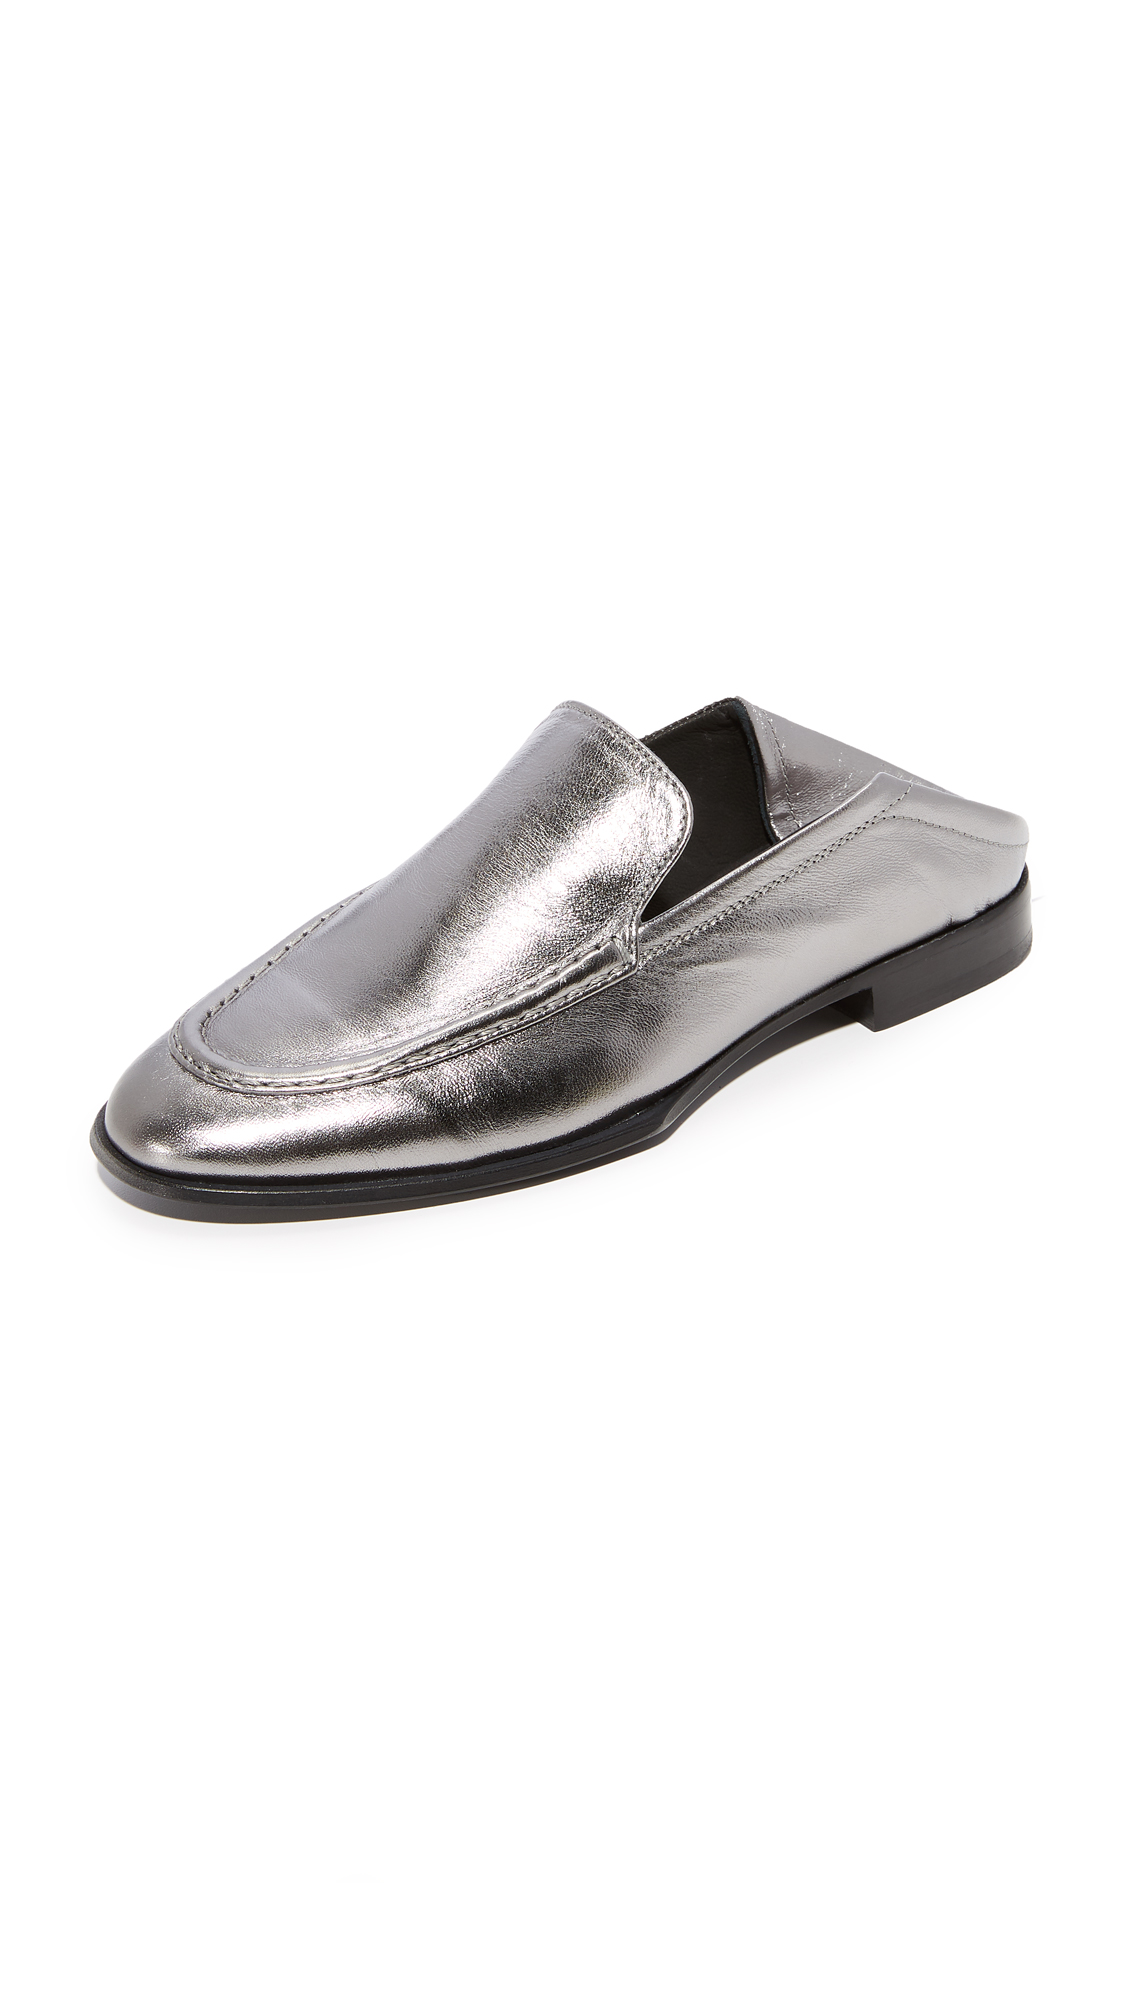 Rag & Bone Alix Convertible Loafers - Gunmetal